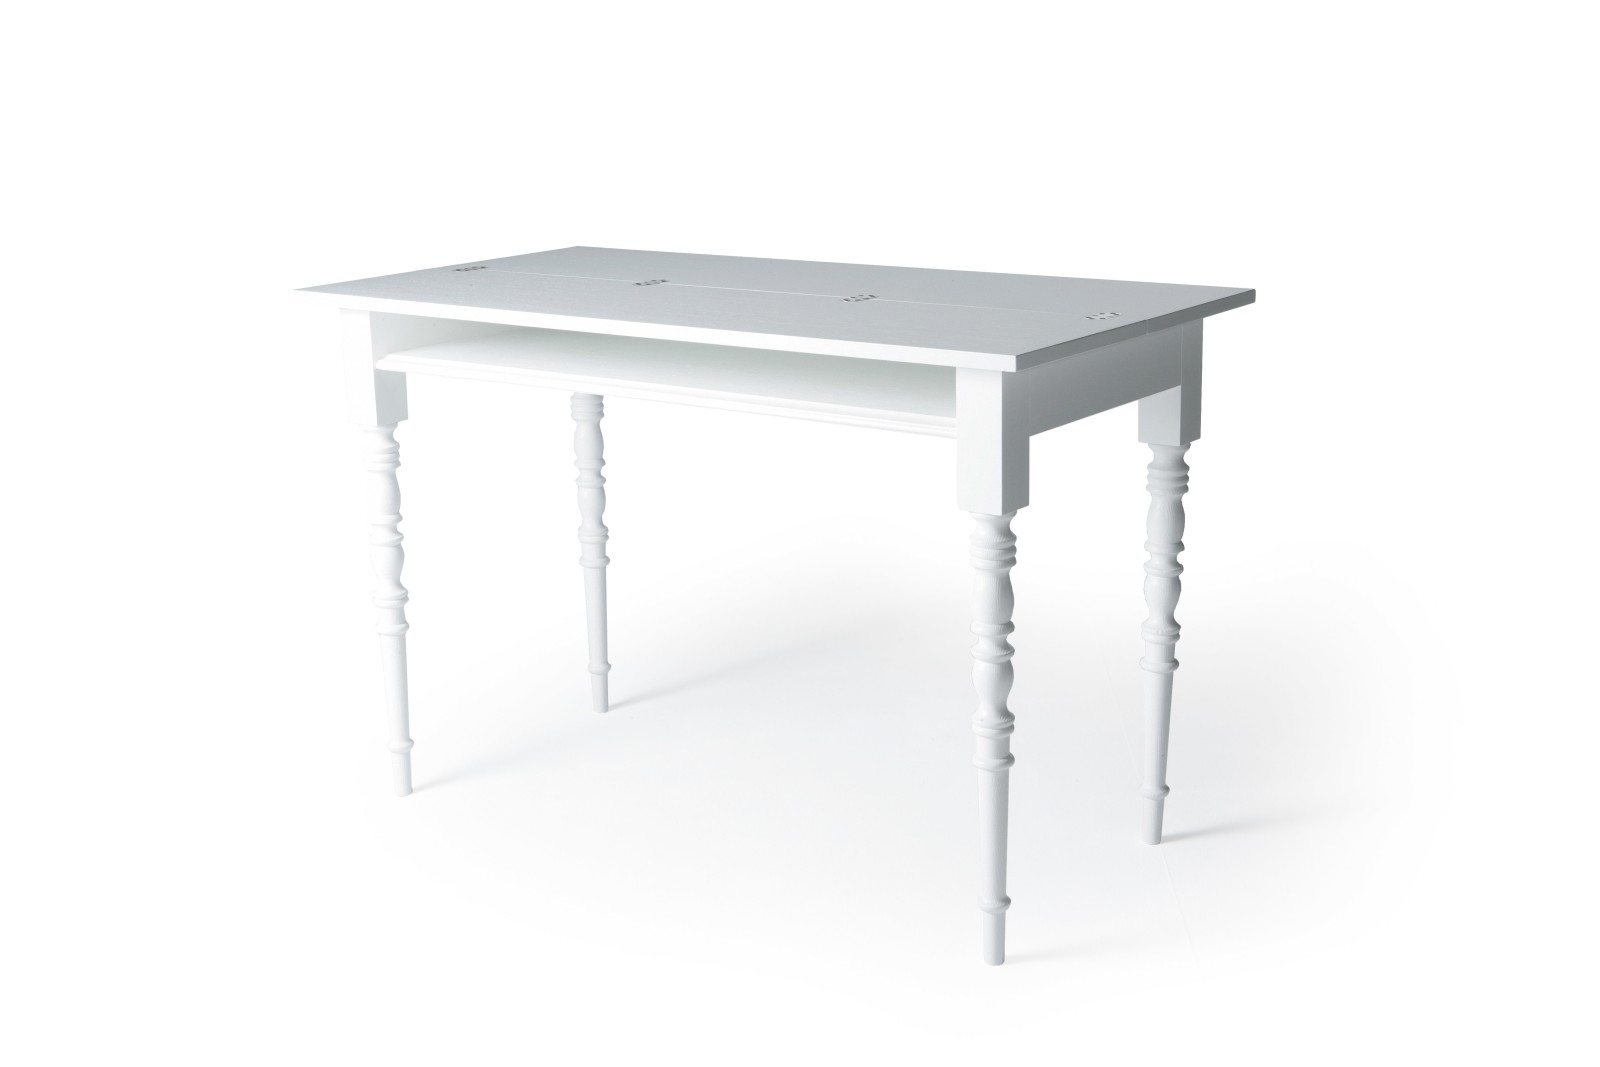 Two Tops Desk Moooi White Wash